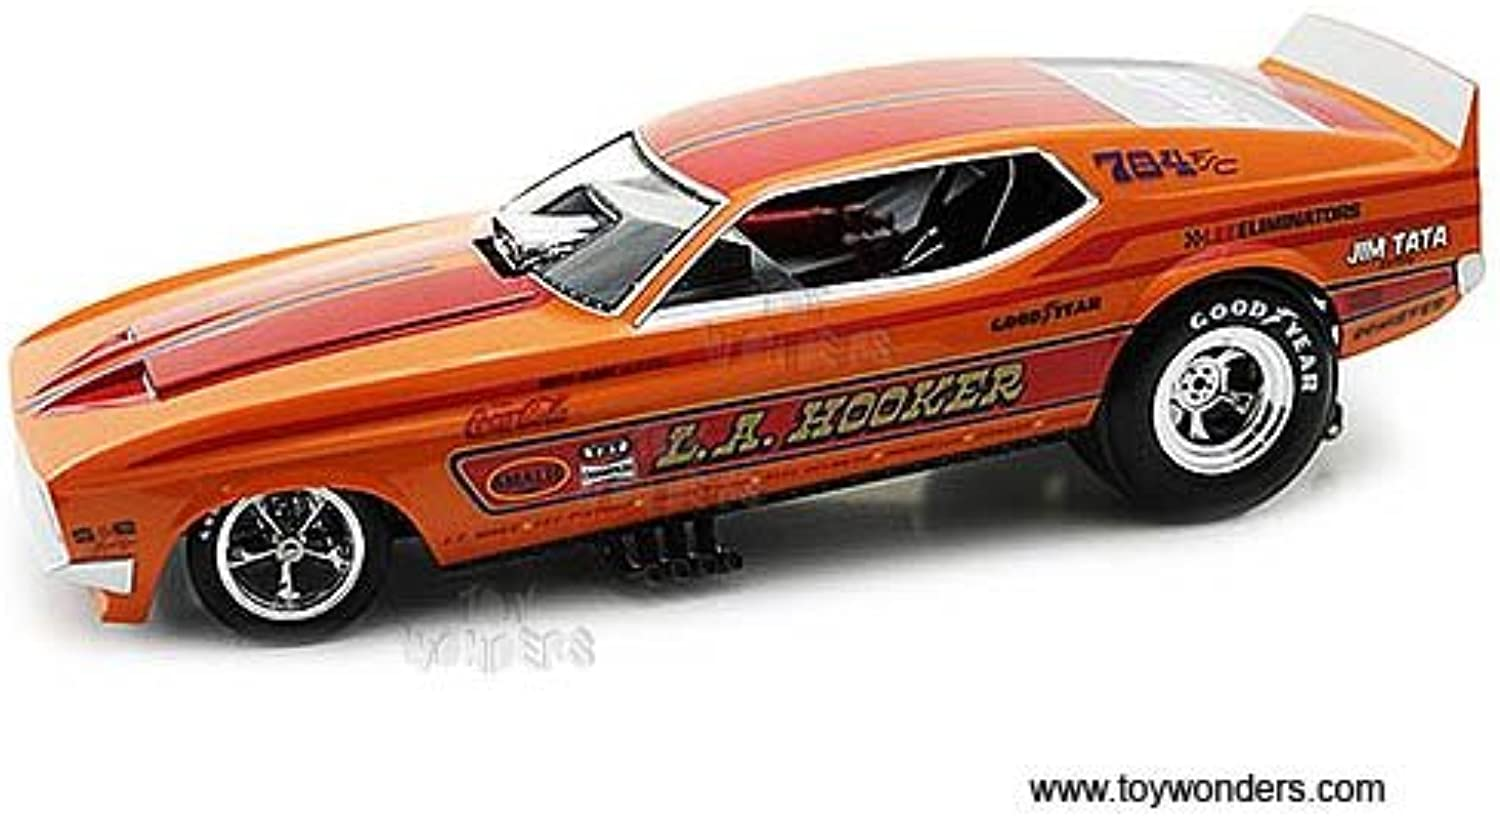 AW1106 1971 L.A. 48j2y0q6fo3 Hooker Ford Mustang NHRA Funny Car AW1106 1 18 Scale 41xfs248q9f World Legends car car AW1106 World Legends of The Quarter Mile